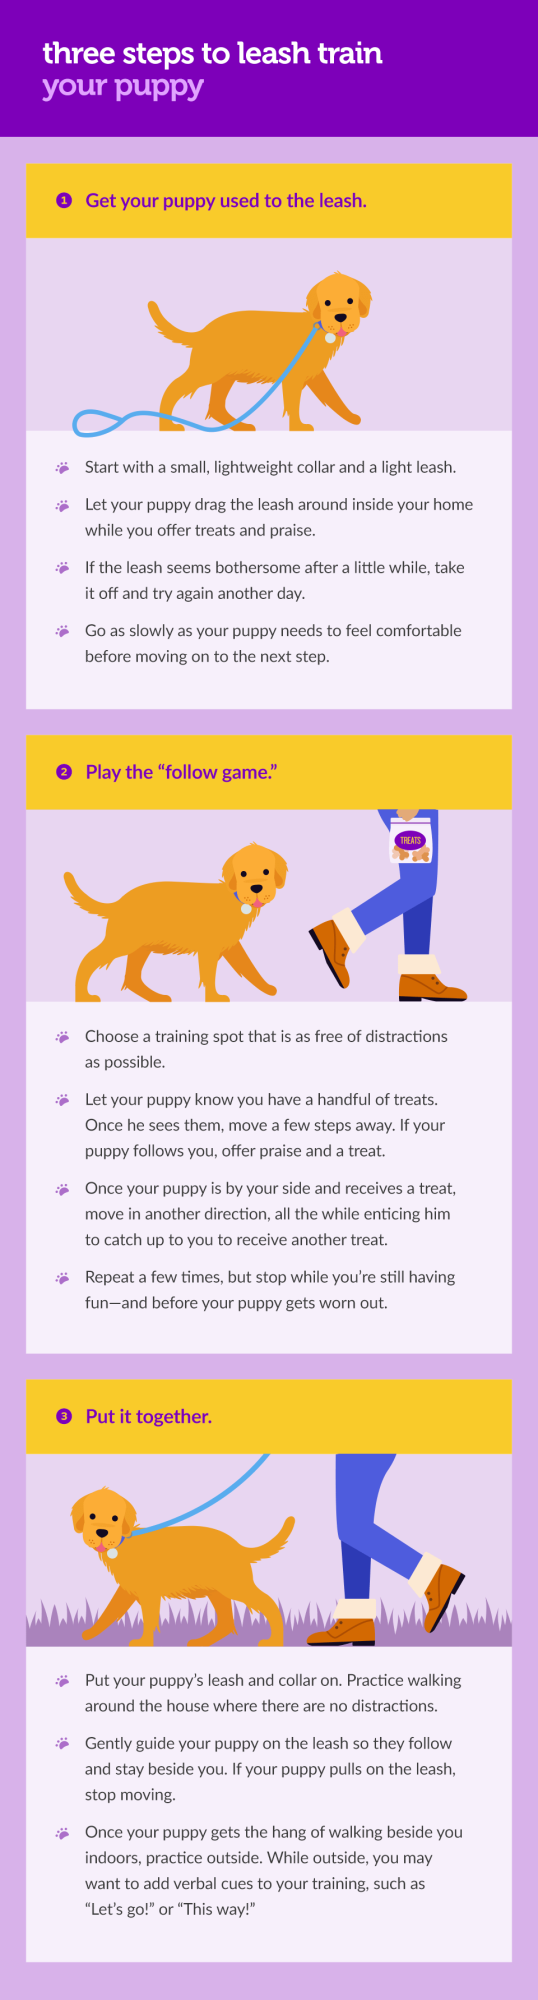 how-to-leash-train-your-puppy-002